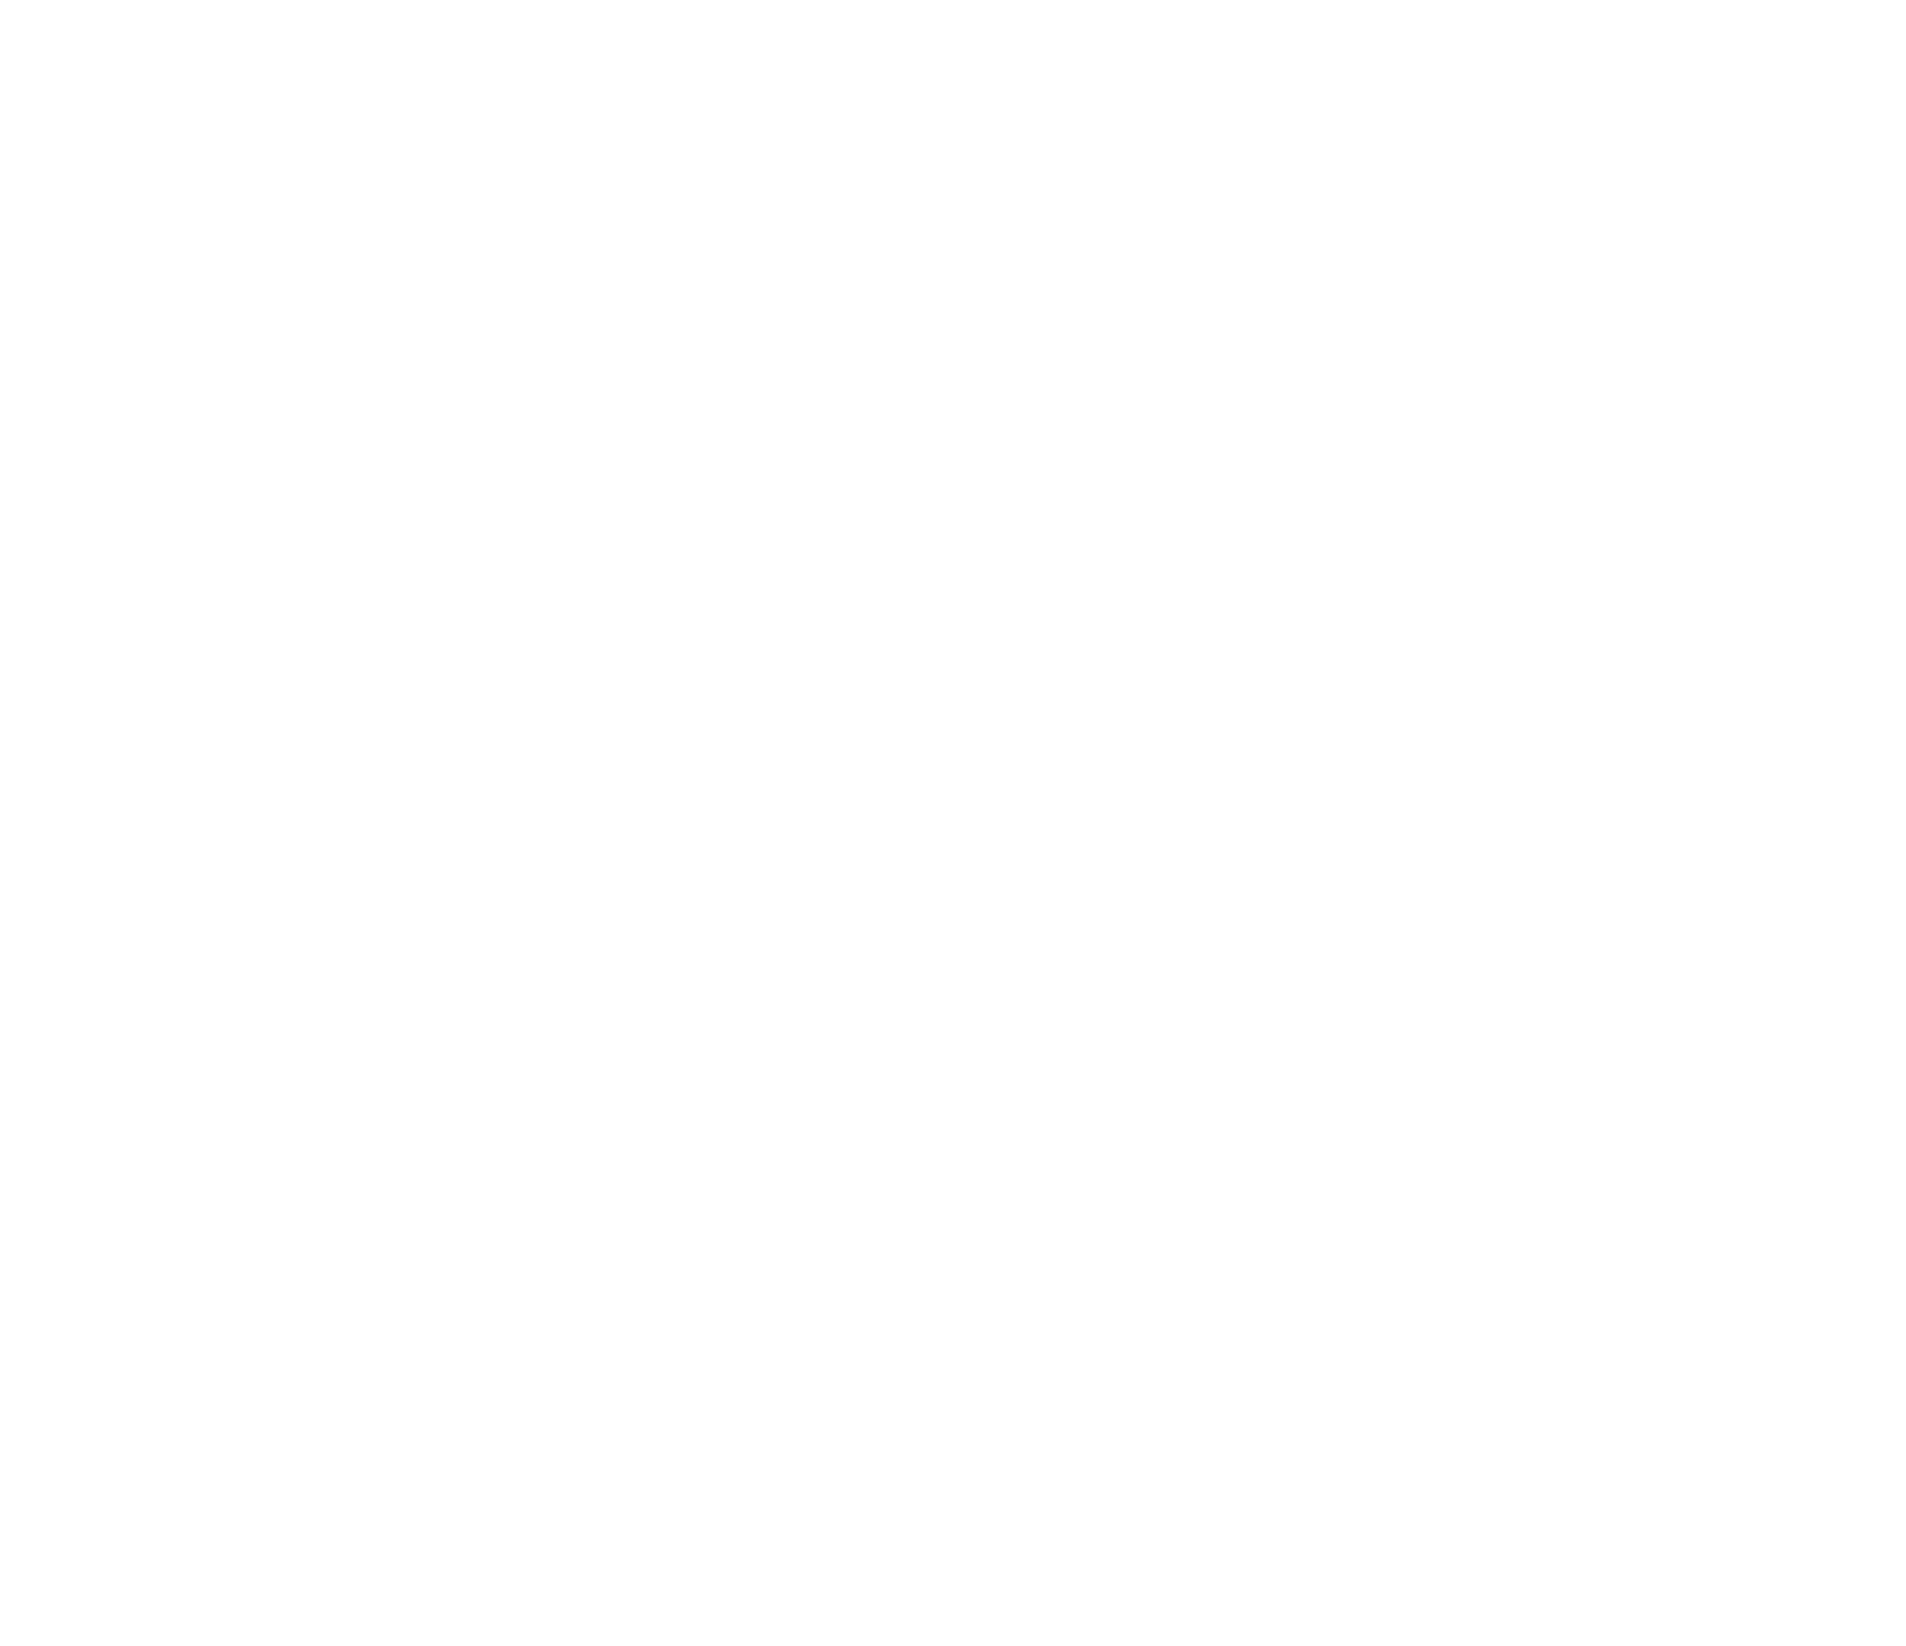 Digital Consultation